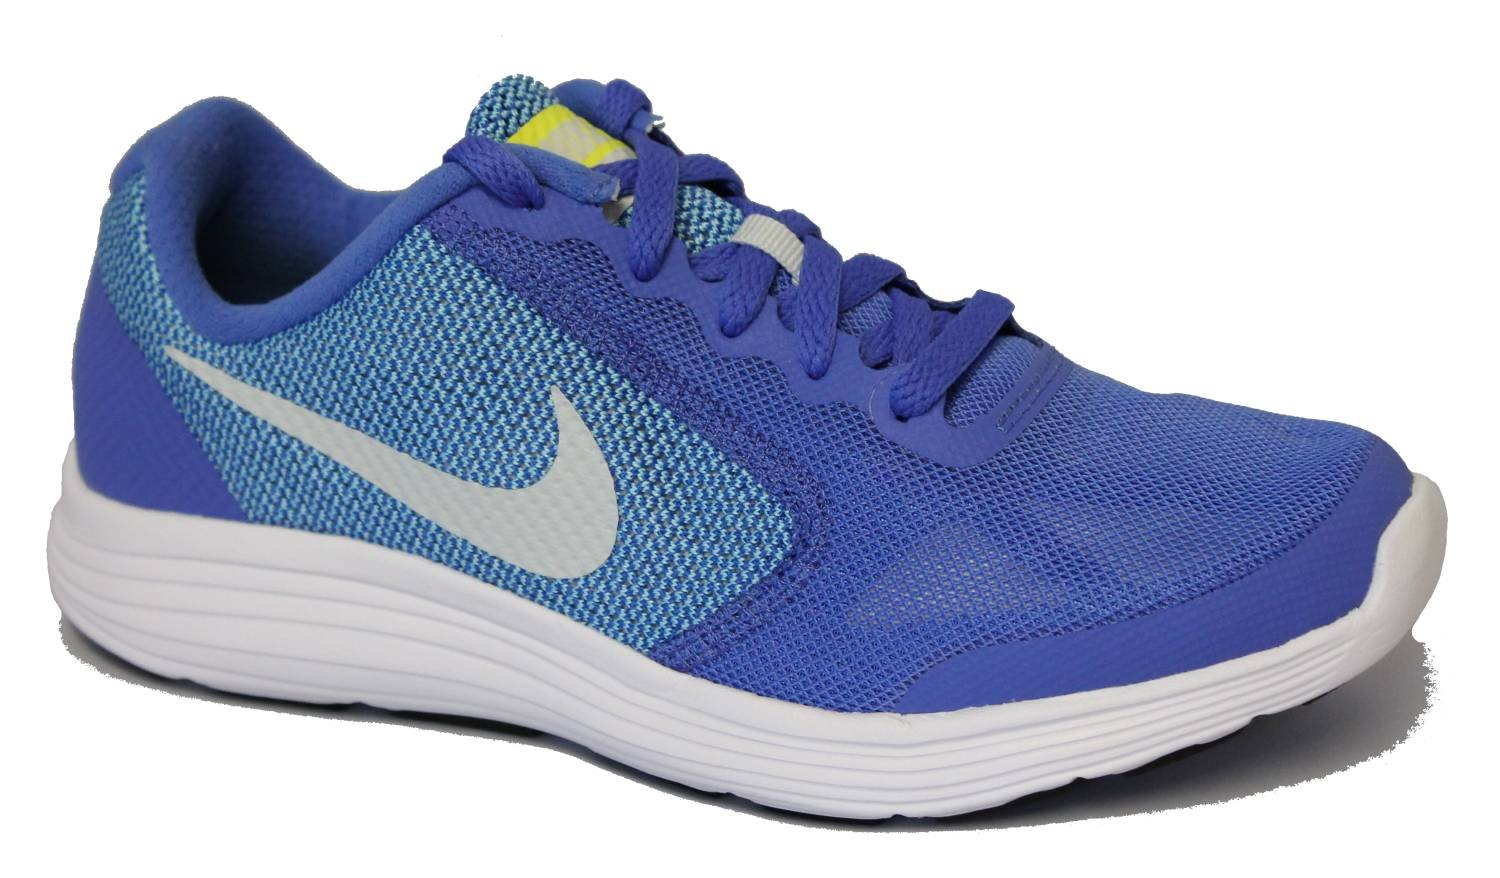 NIKE ' Revolution 3 (GS) Running Shoes B01GXWVV7O 6 M US Big Kid|Medium Blue/Pure Platinum/Polarized Blue